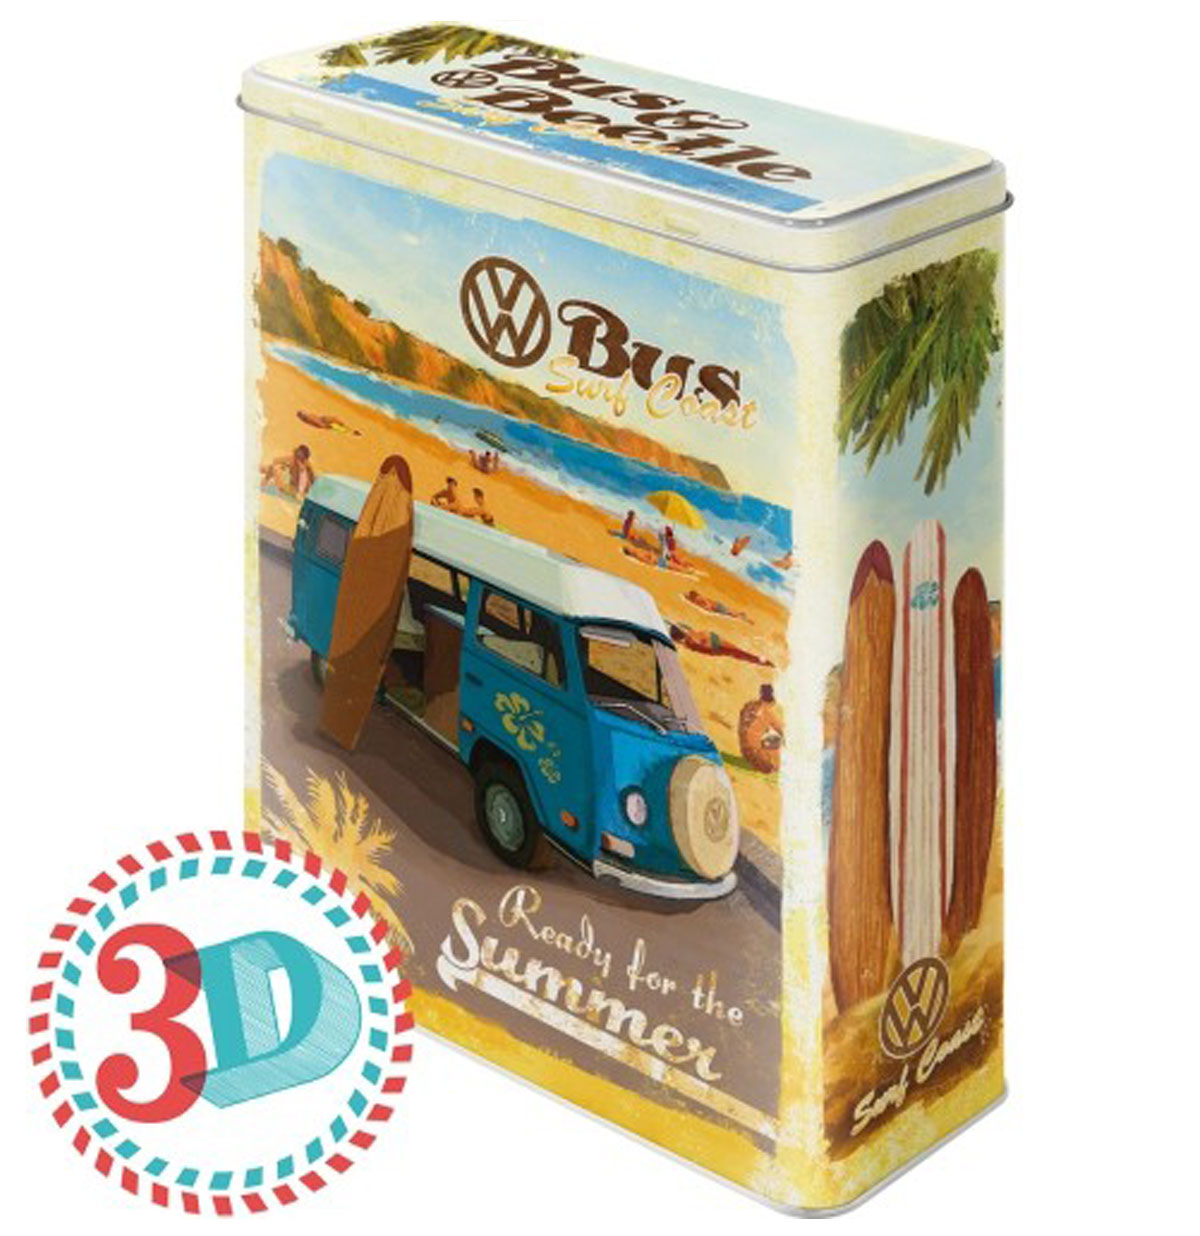 VW Volkswagen Bus & Beetle Surf Coast Tin Box XL